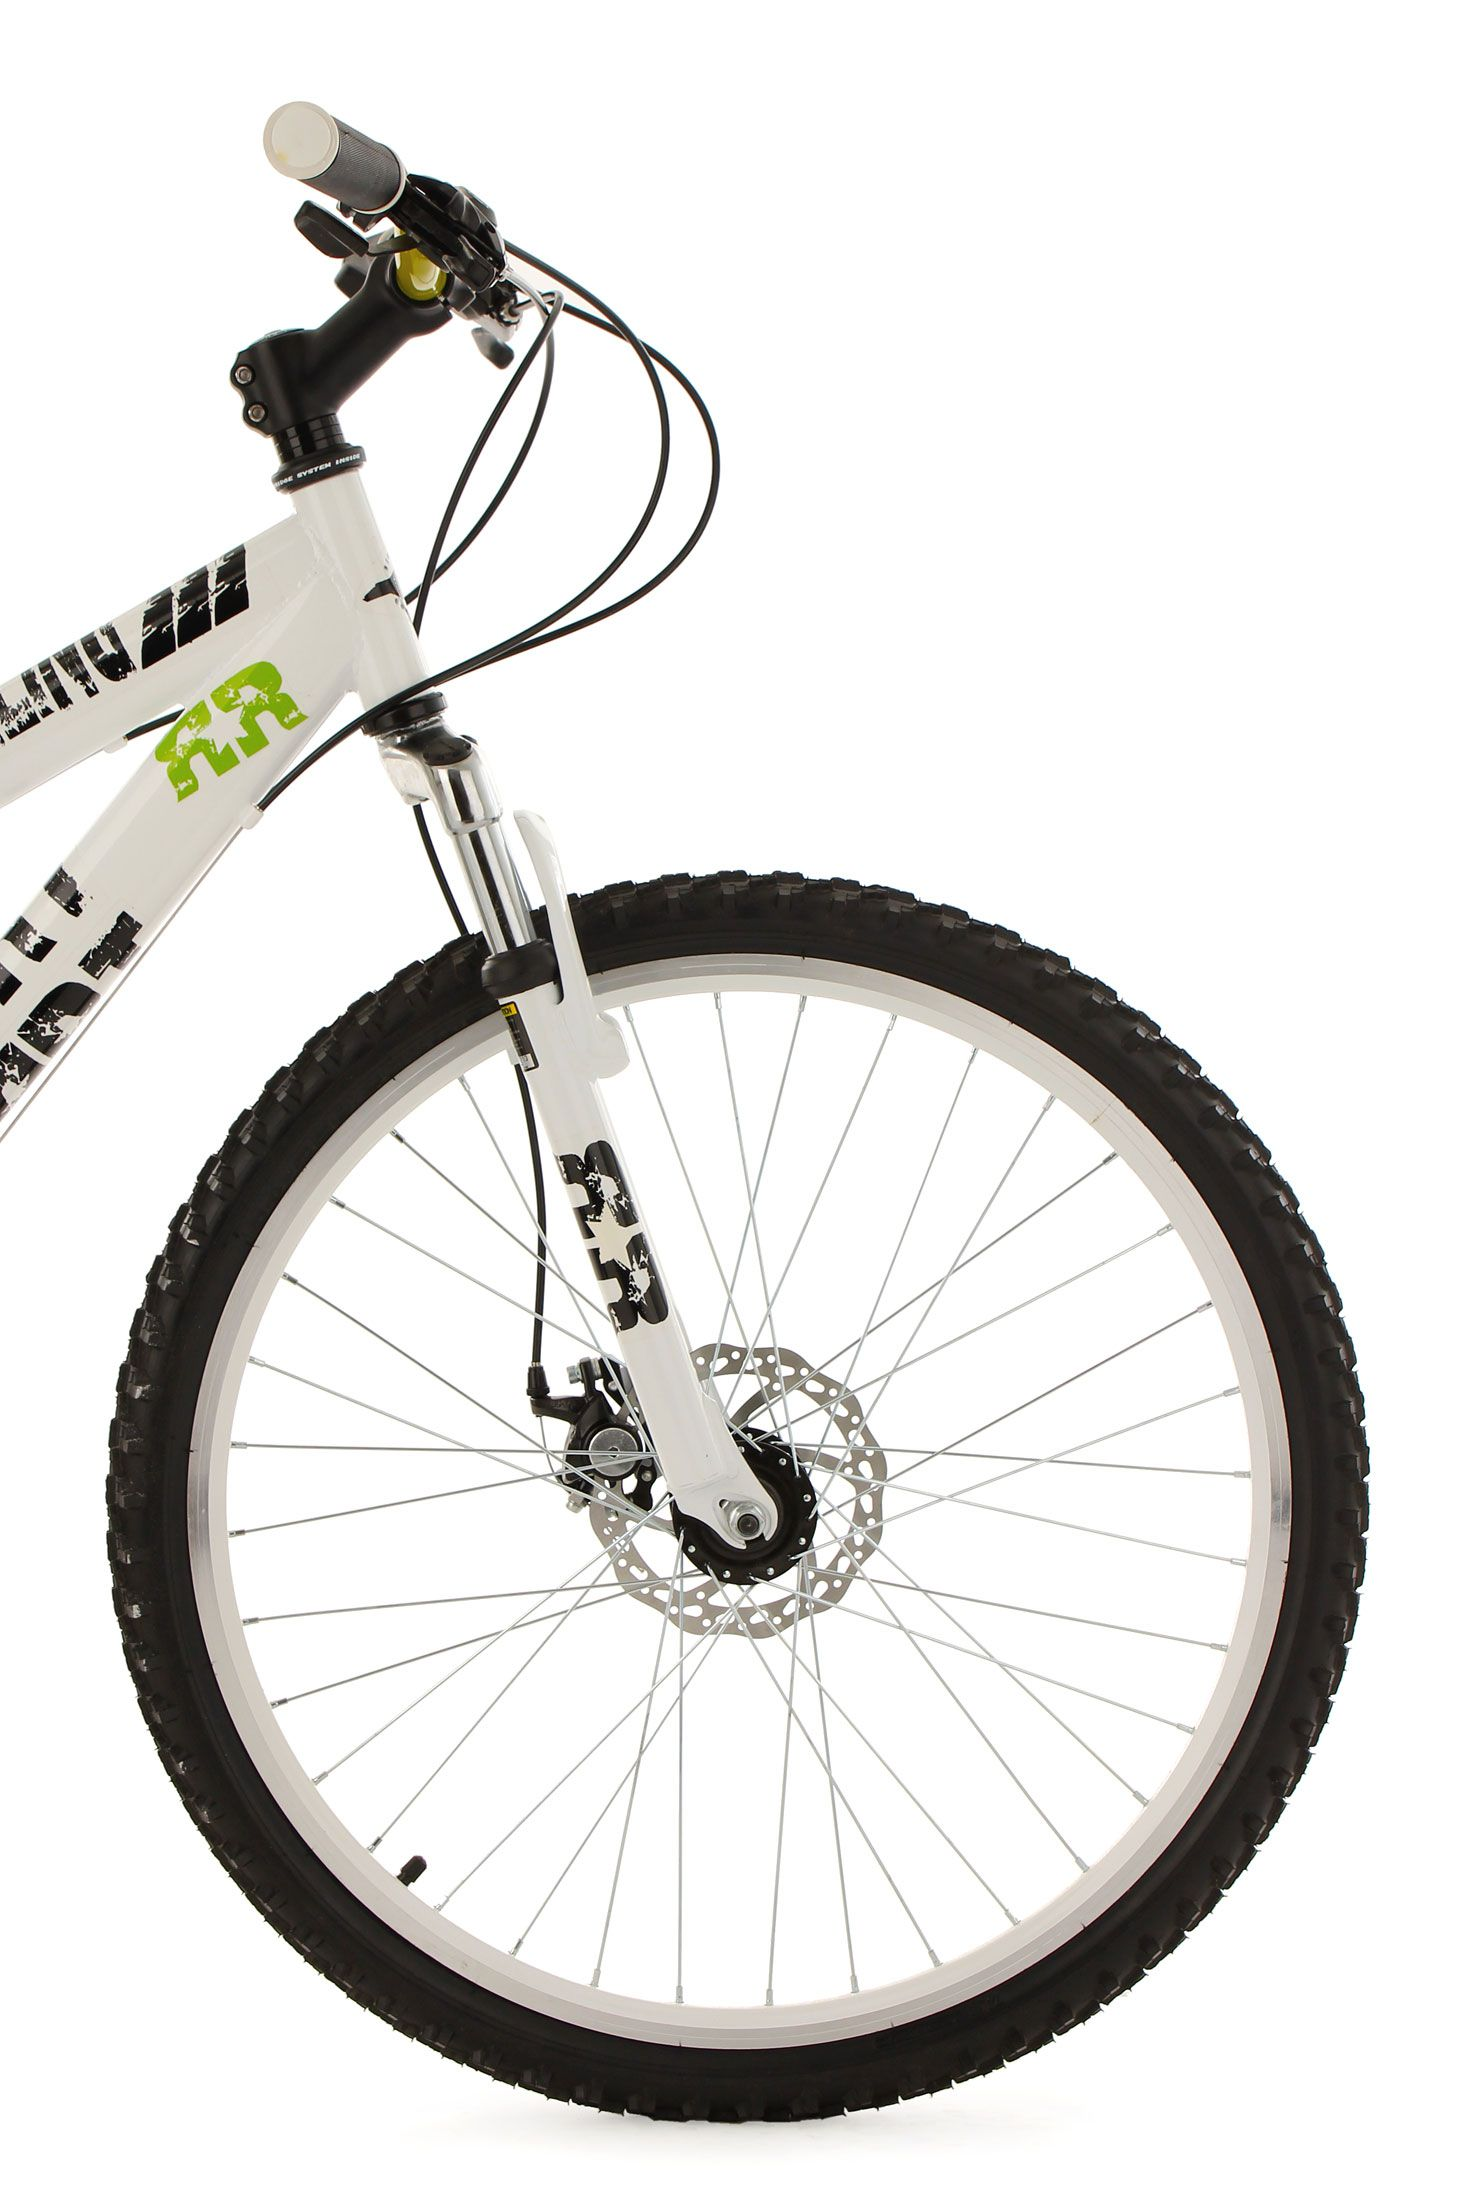 Mountainbike Dirt 26 Dirrt Weiss Rh 34 Cm Ks Cycling